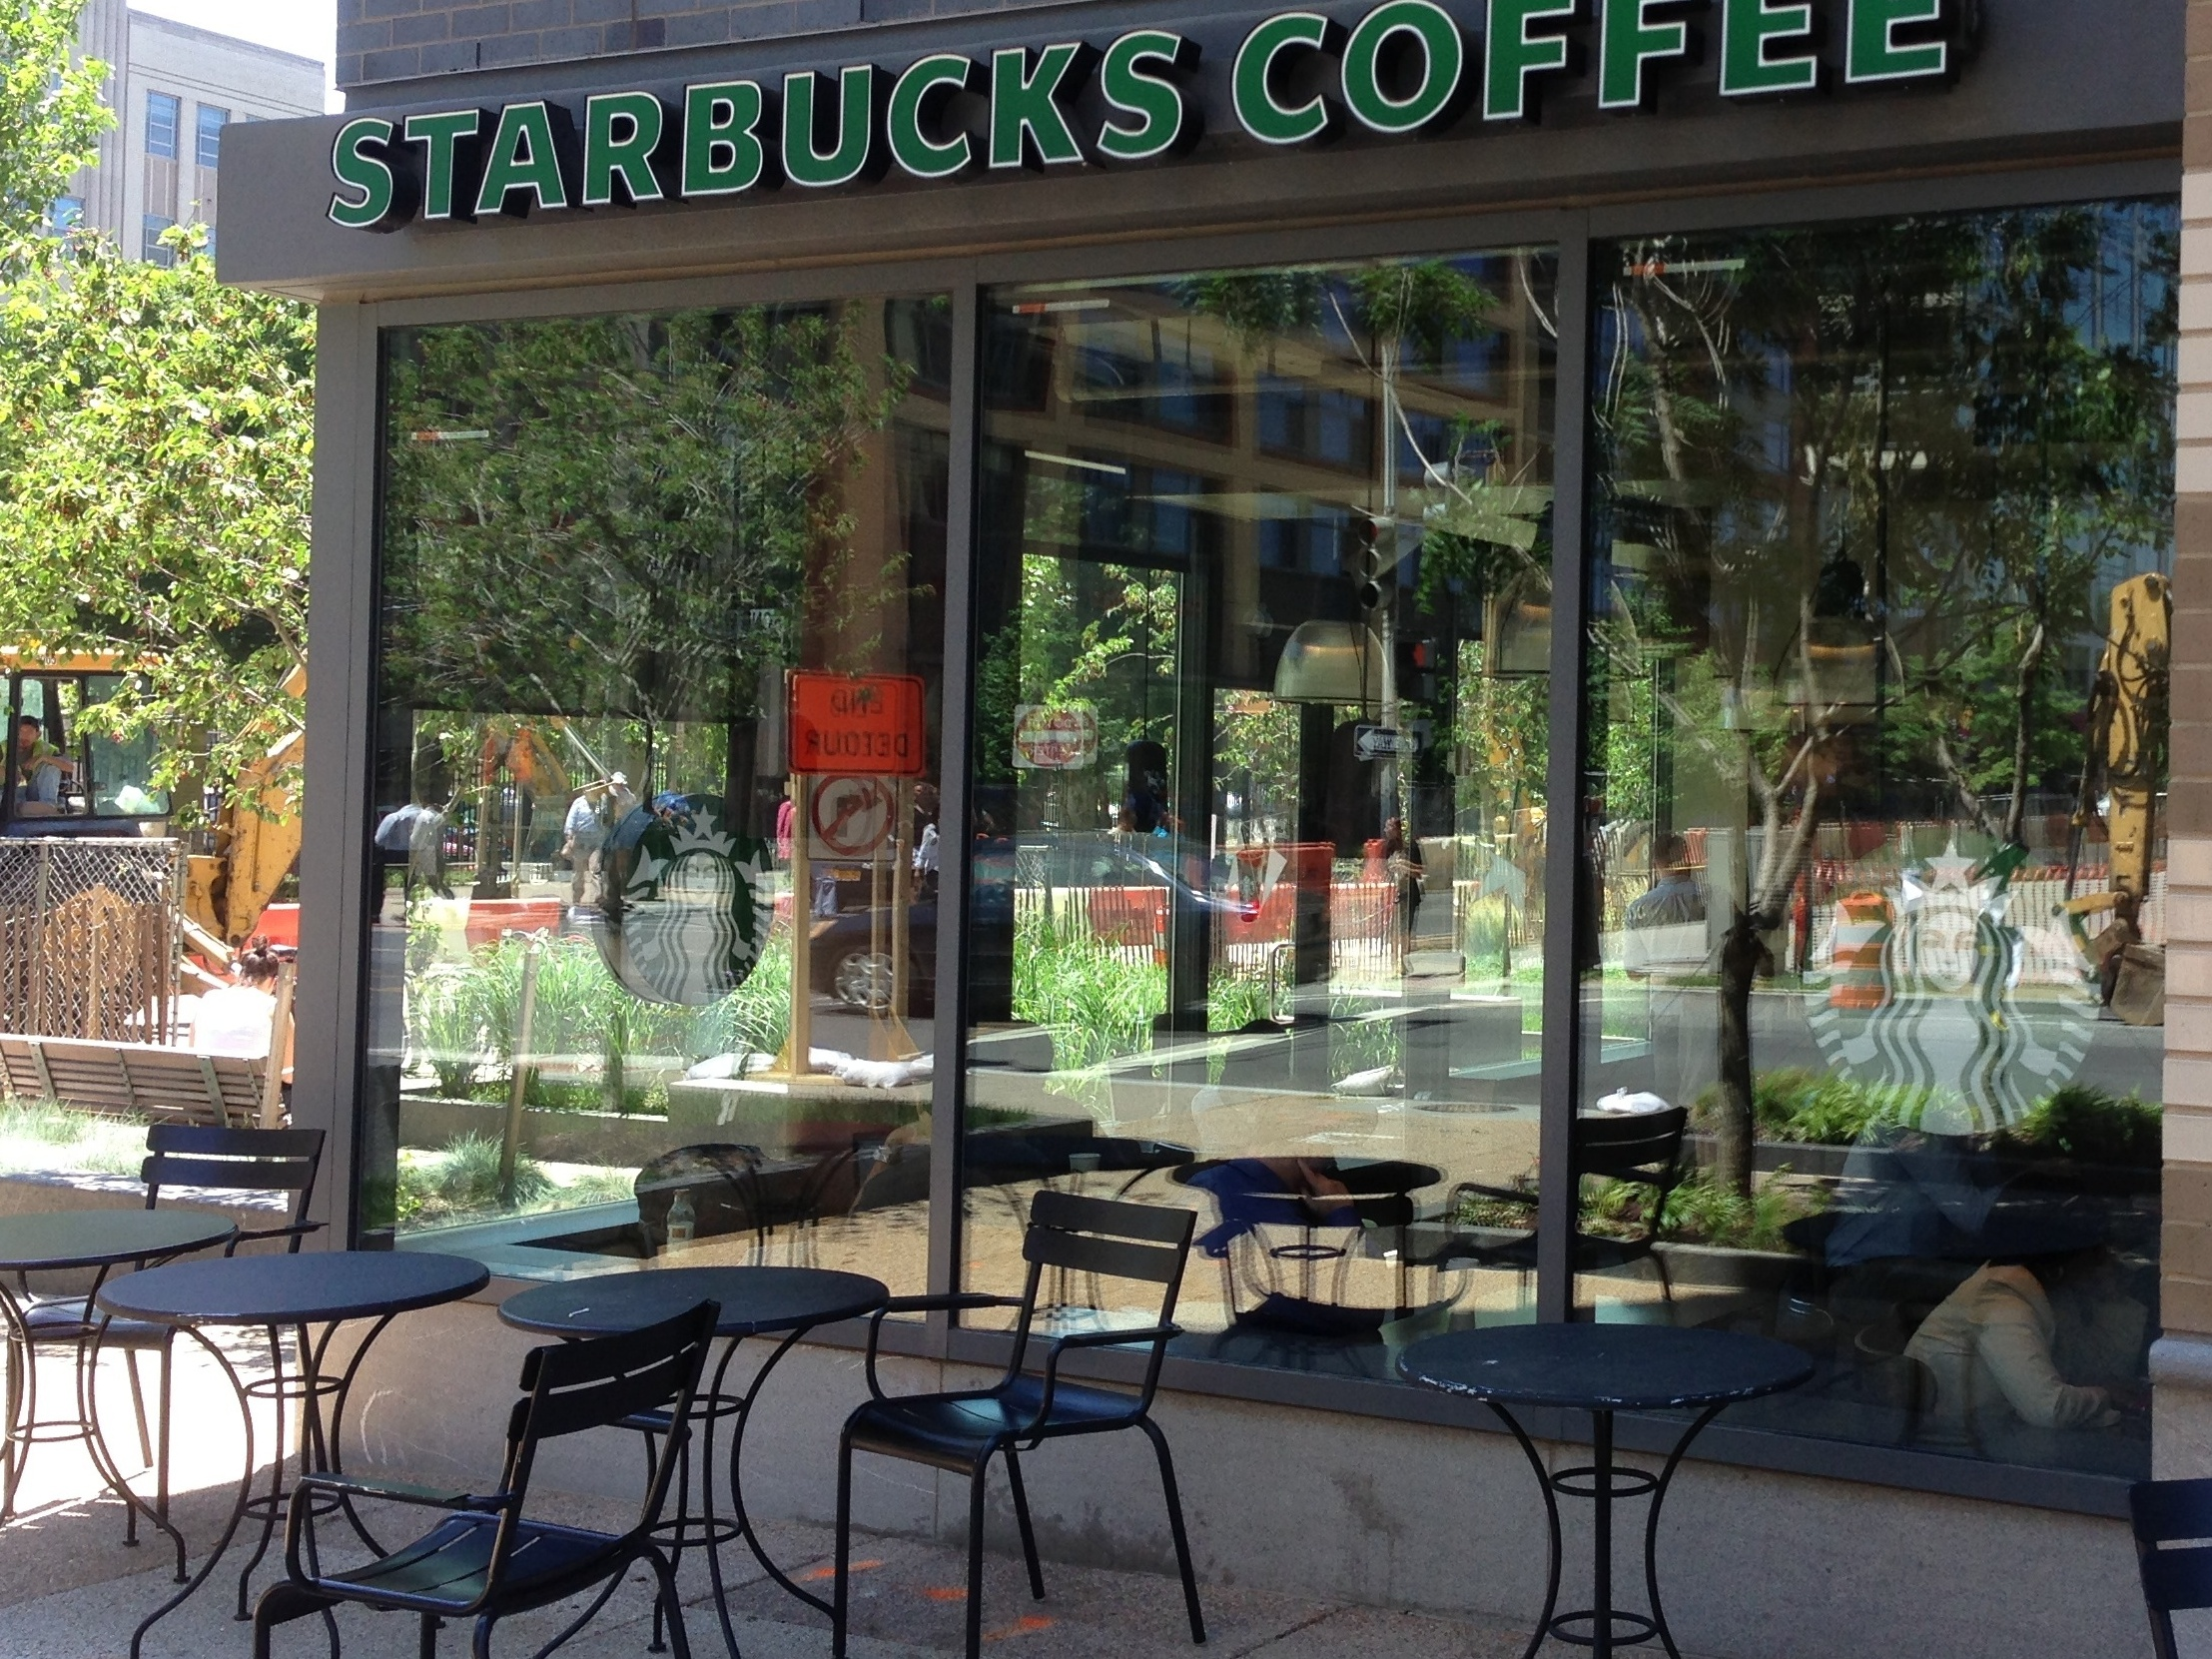 starbucks make all outdoor seating areas smoke free